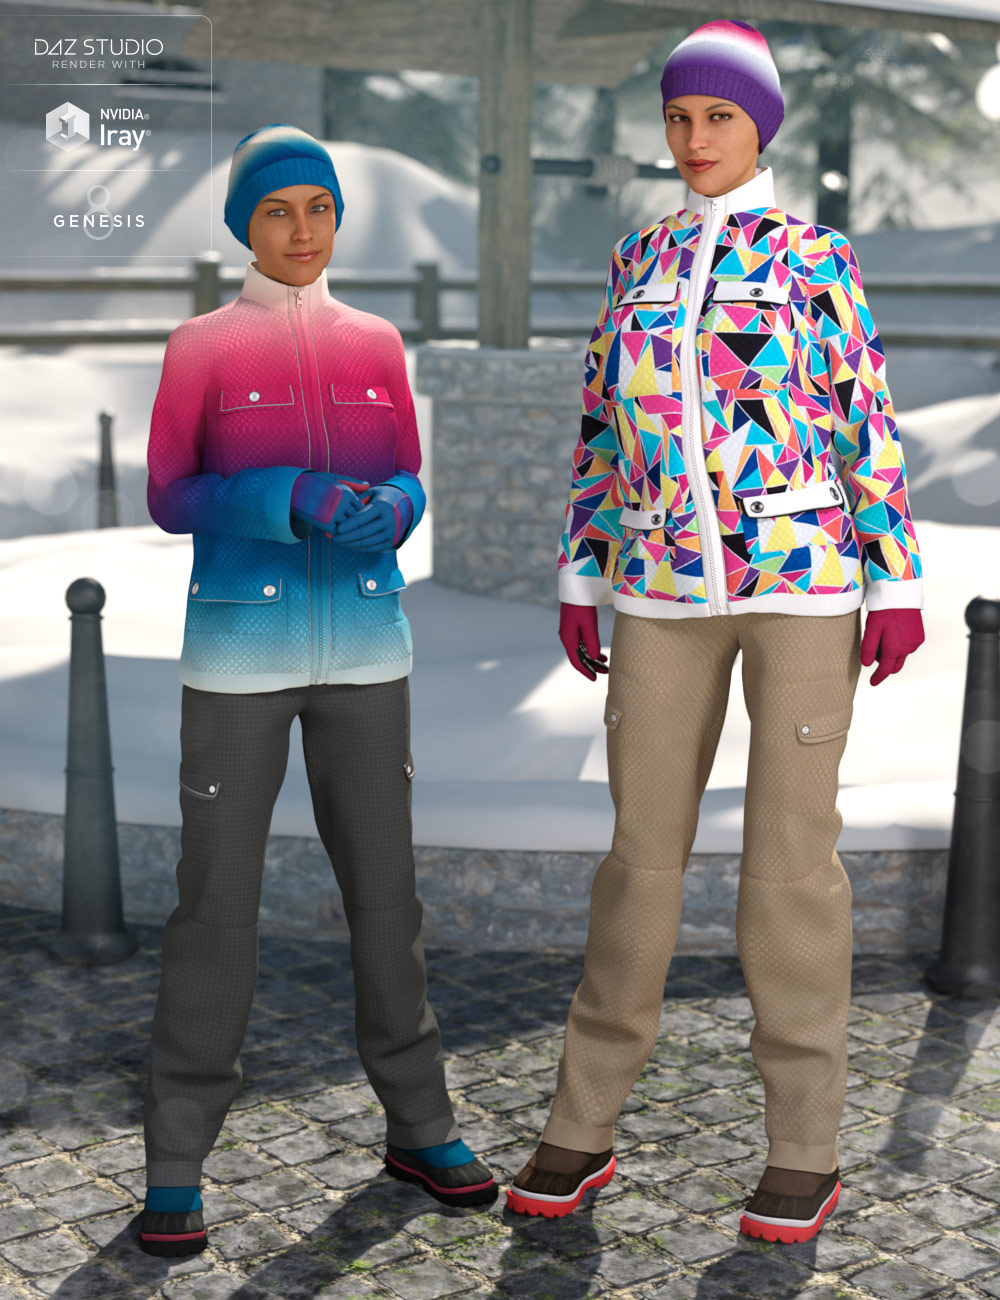 dForce Winter Snow Outfit Female Textures by: DirtyFairy, 3D Models by Daz 3D